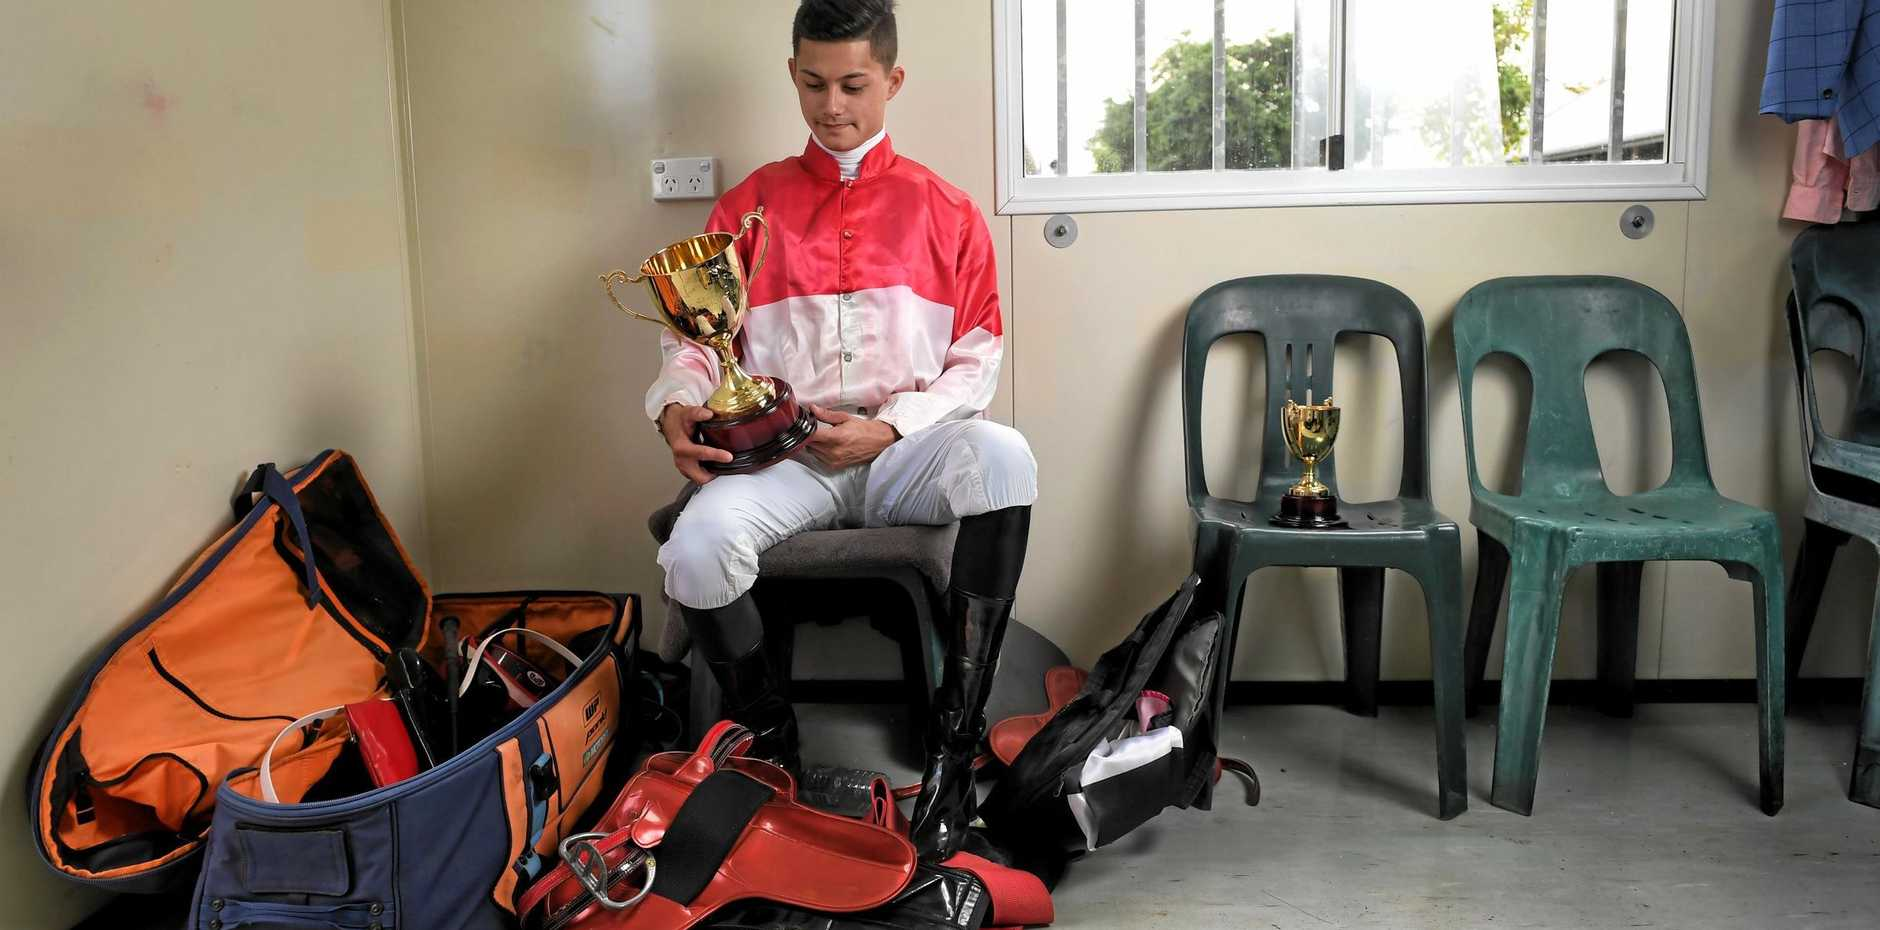 Rising apprentice jockey Michael Murphy reflects on his first Ipswich Cup win after riding Bergerac to victory following a rough period in his career.